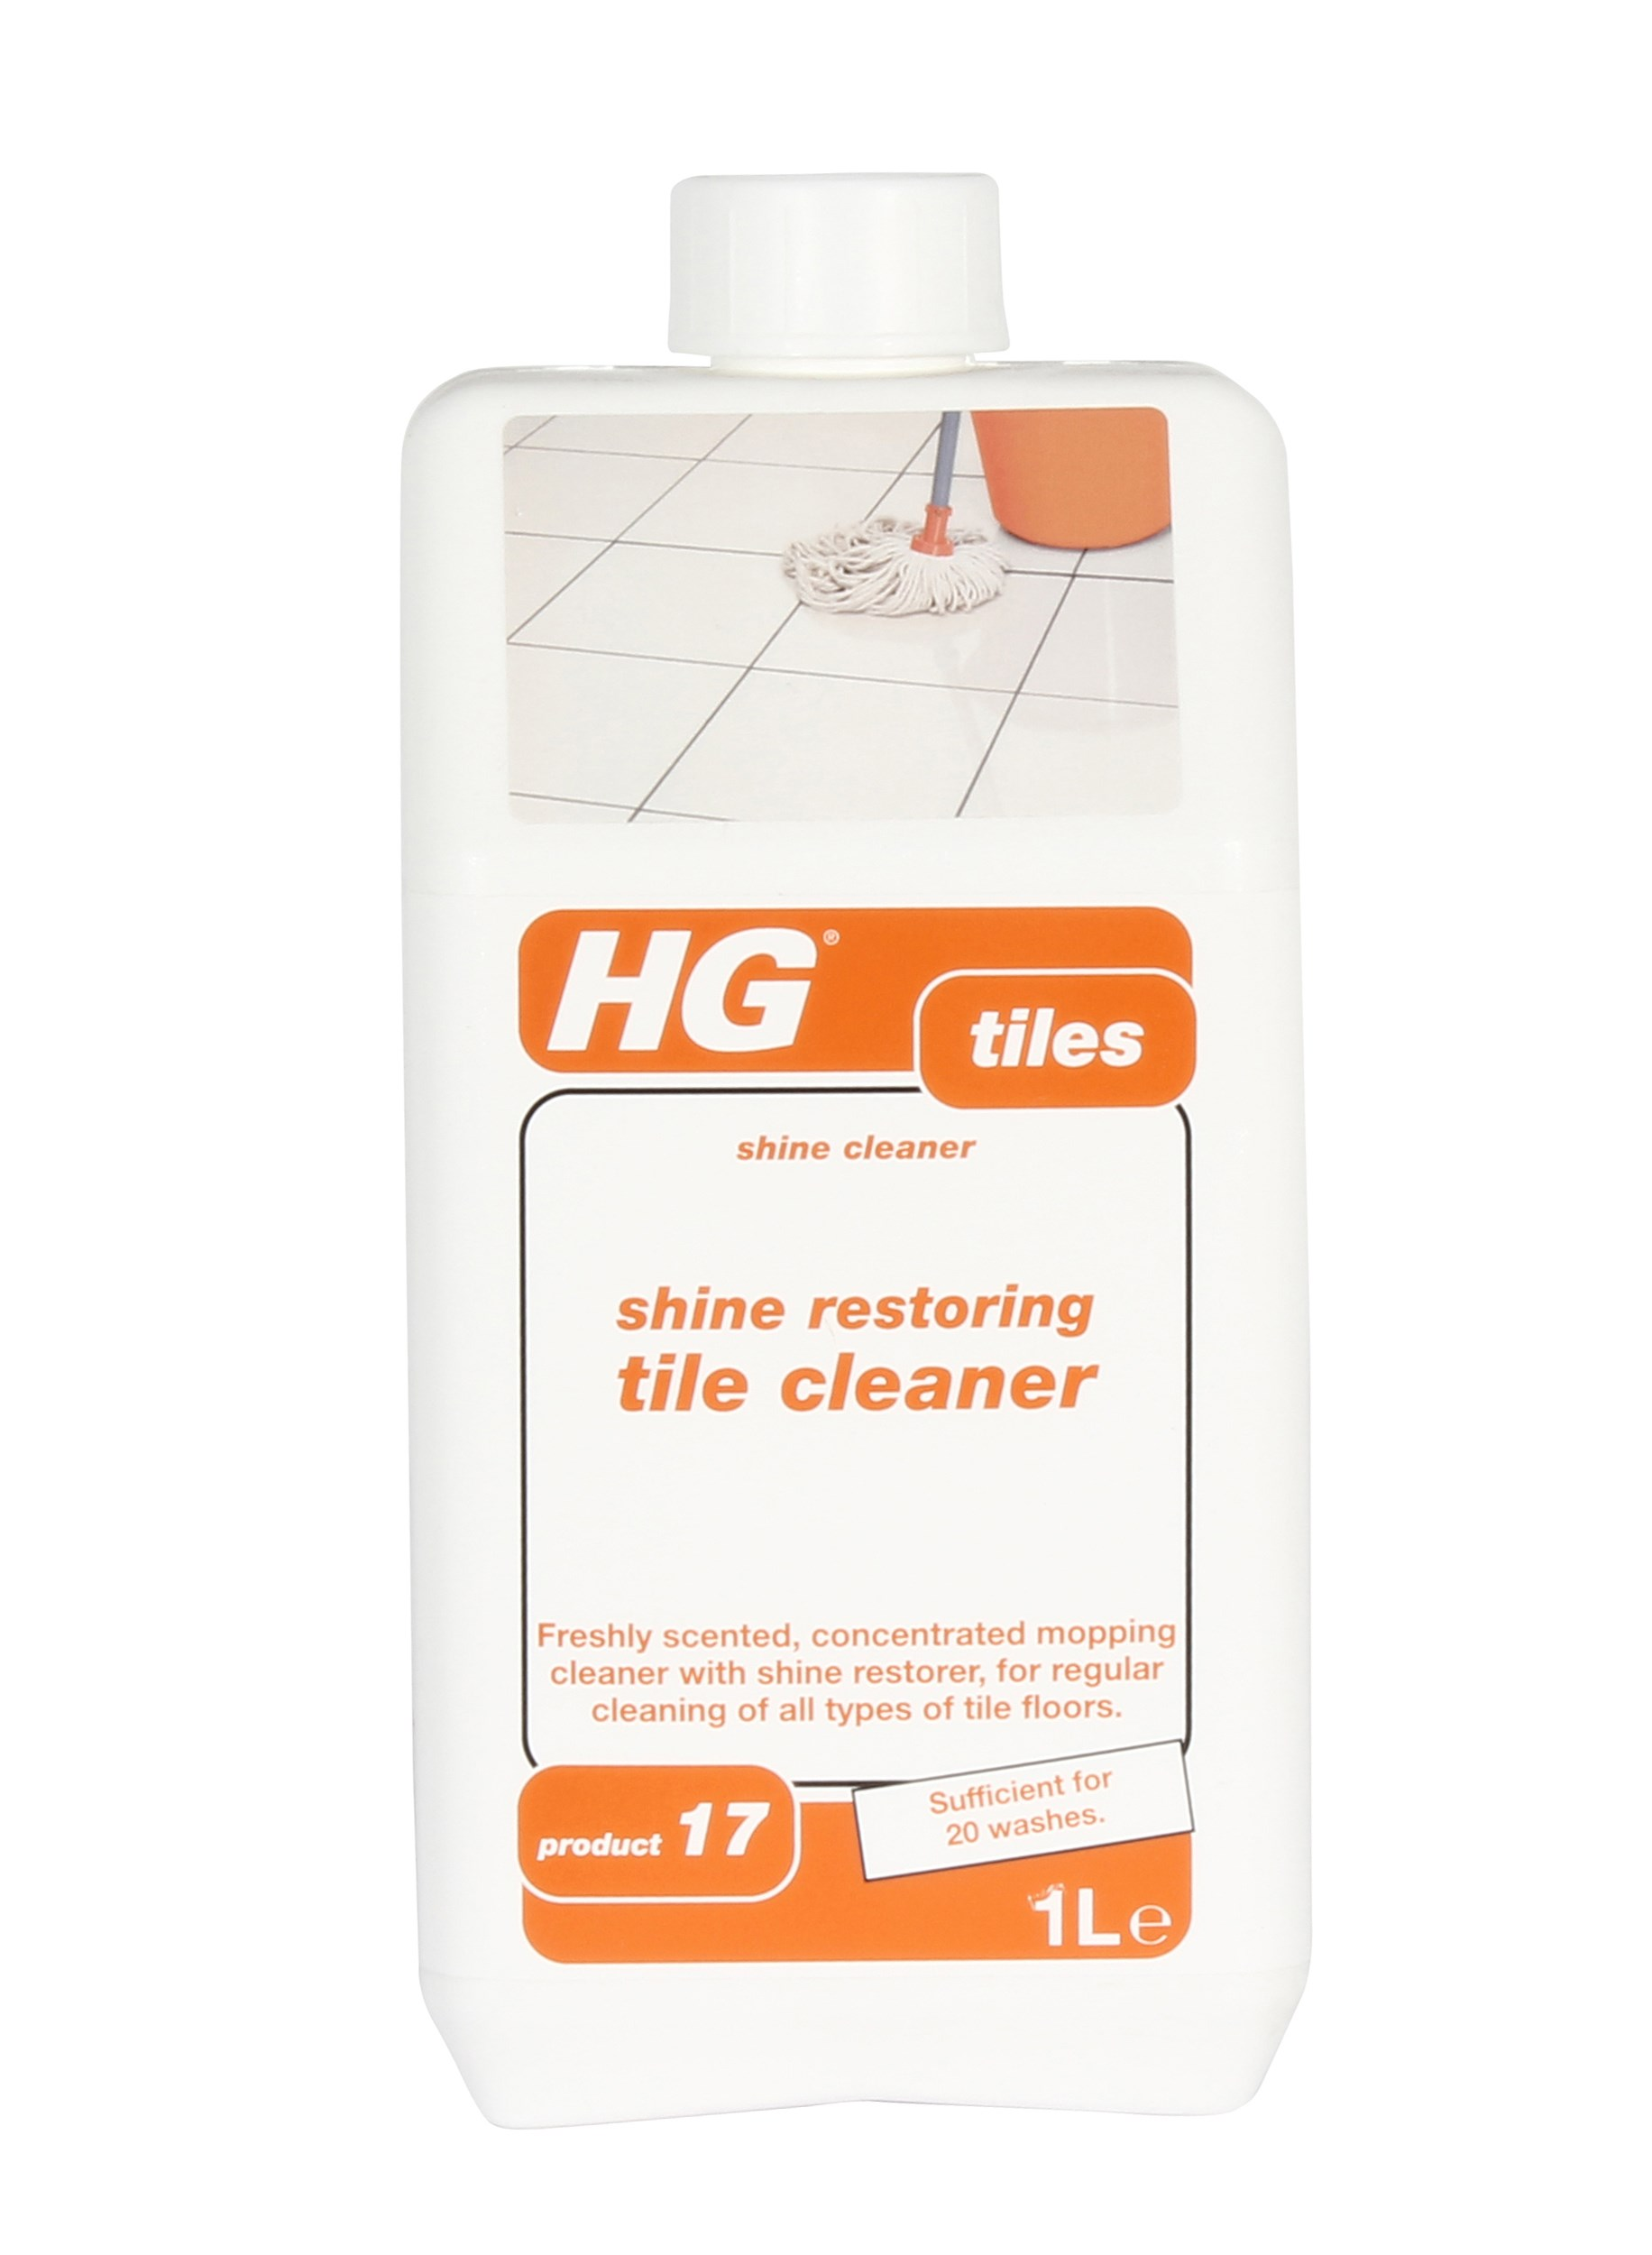 Hg shine restoring tile cleaner 1 litre floor cleaning hg shine restoring tile cleaner 1 litre find your local store stocking floor cleaning products dailygadgetfo Gallery